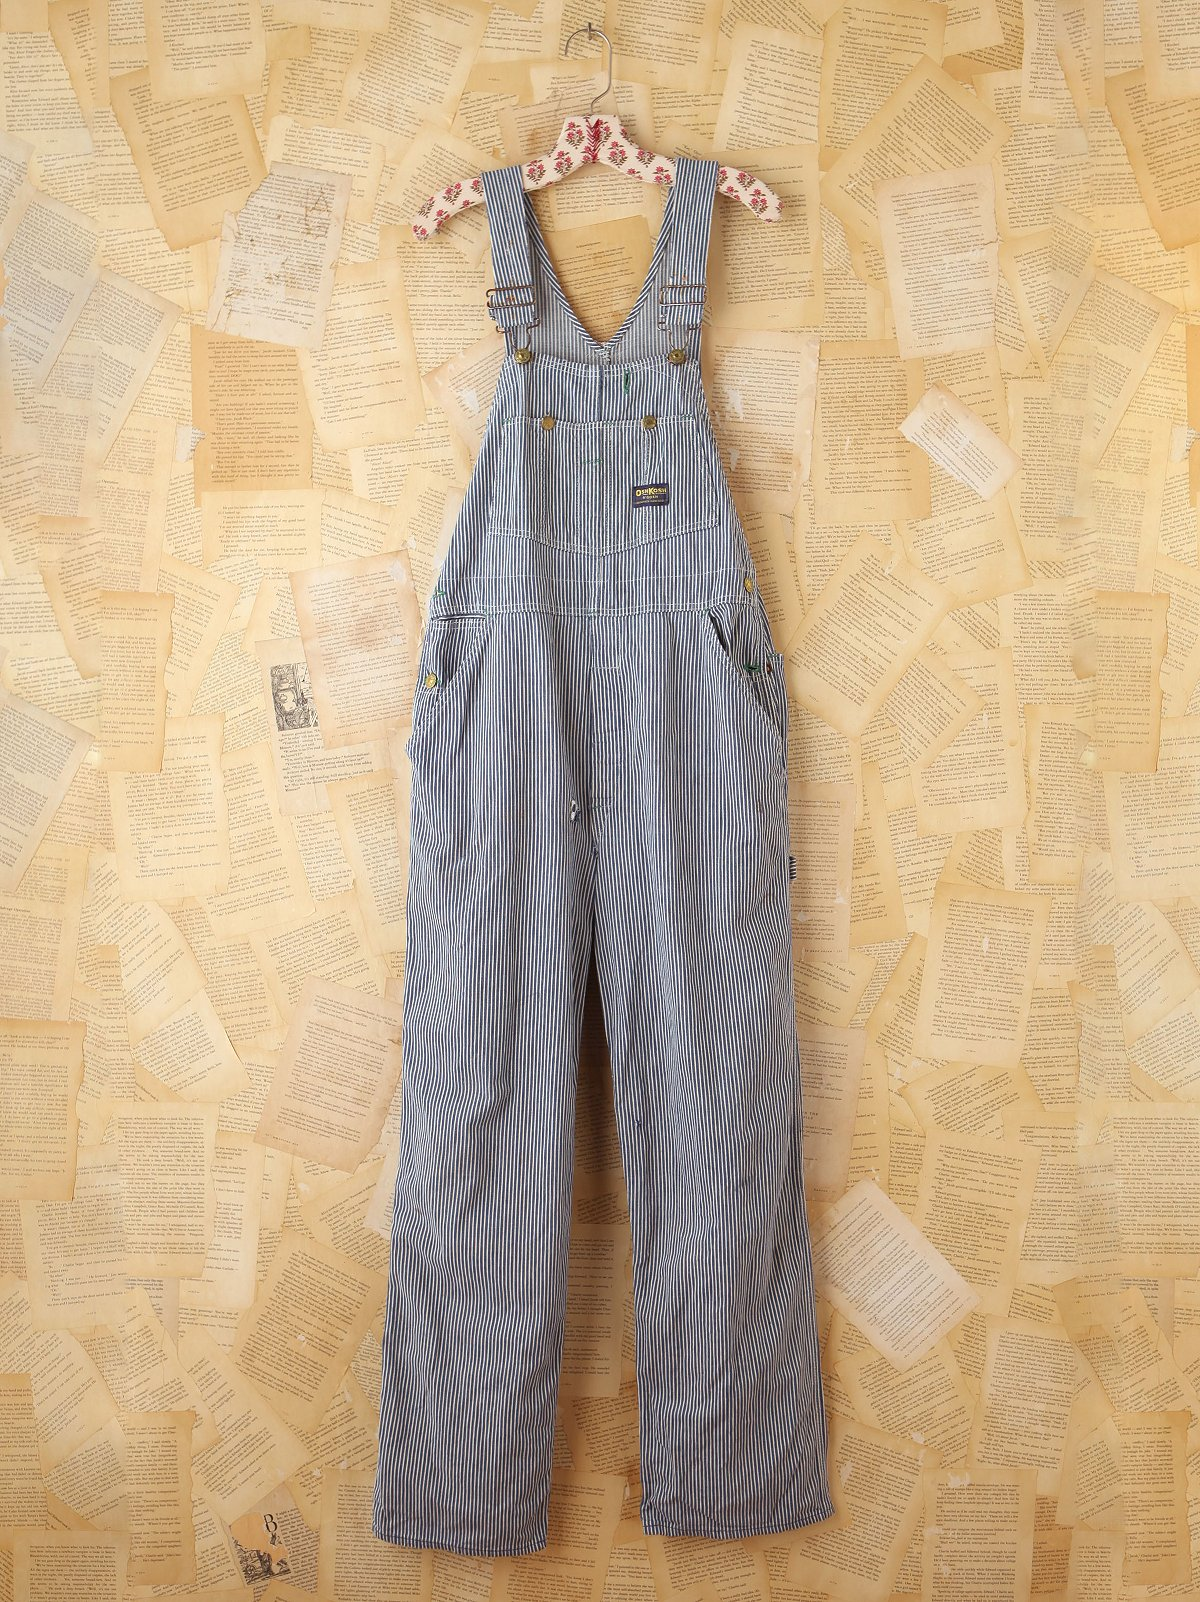 Vintage Osh Kosh Railroad Striped Overalls